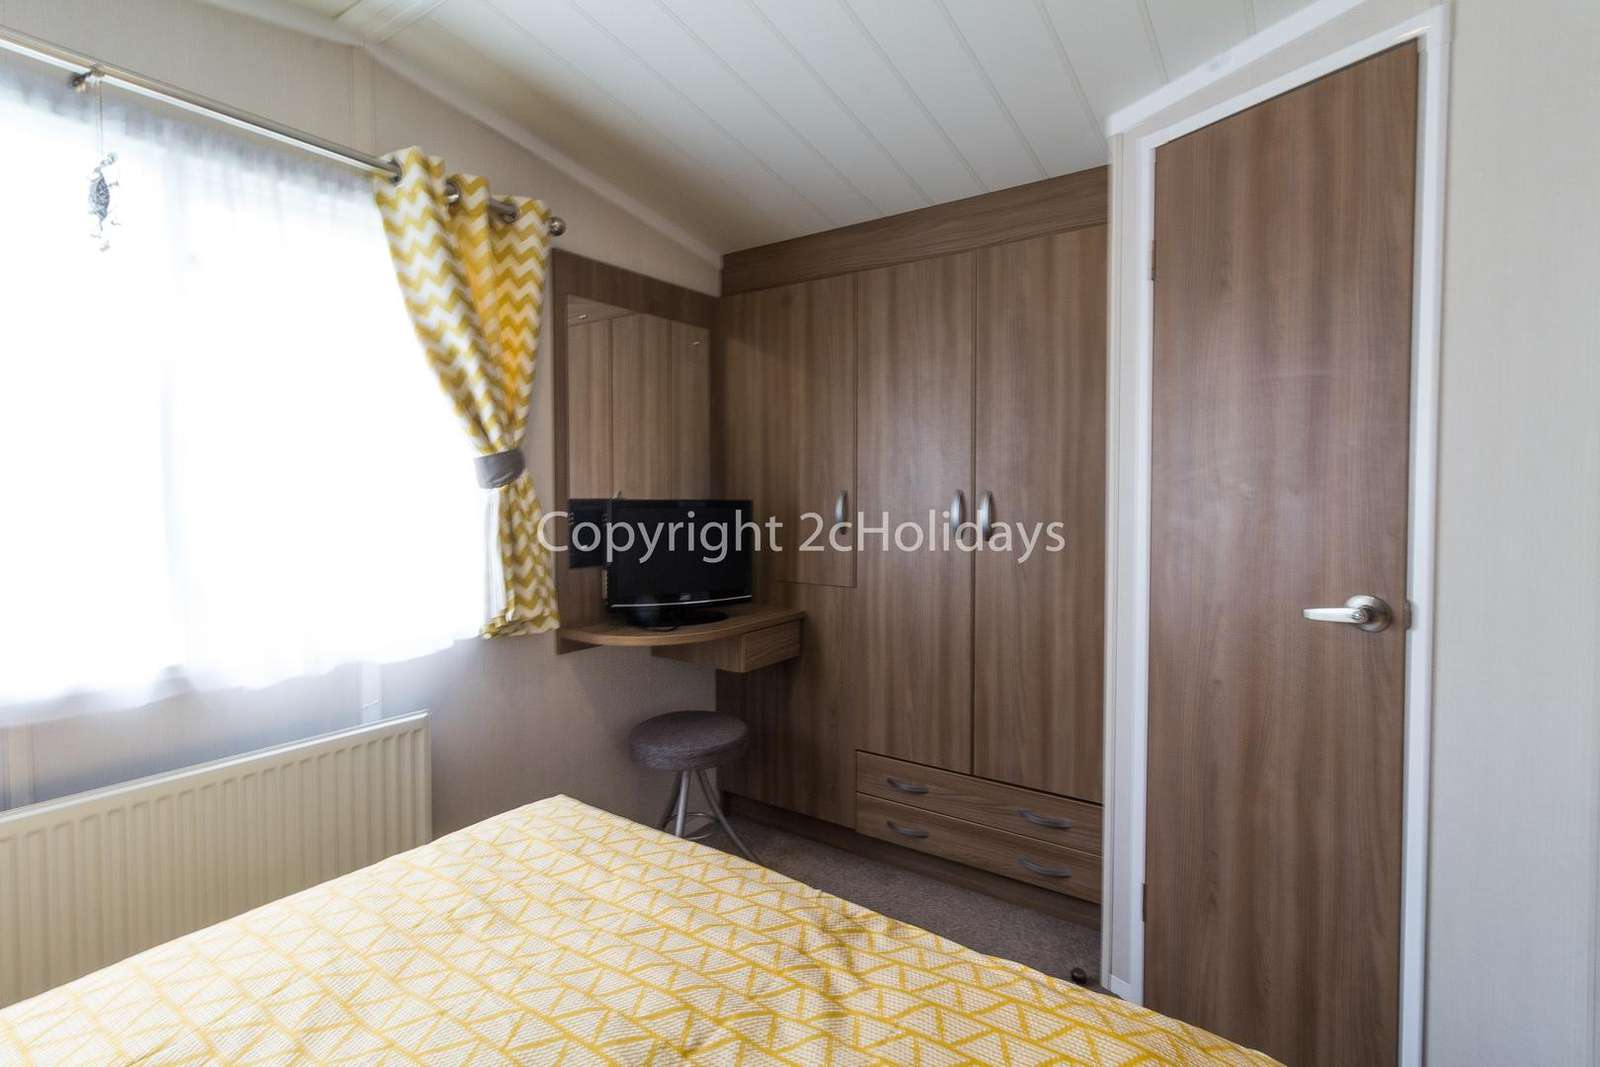 There's plenty of storage space in this master bedroom with an en-suite!